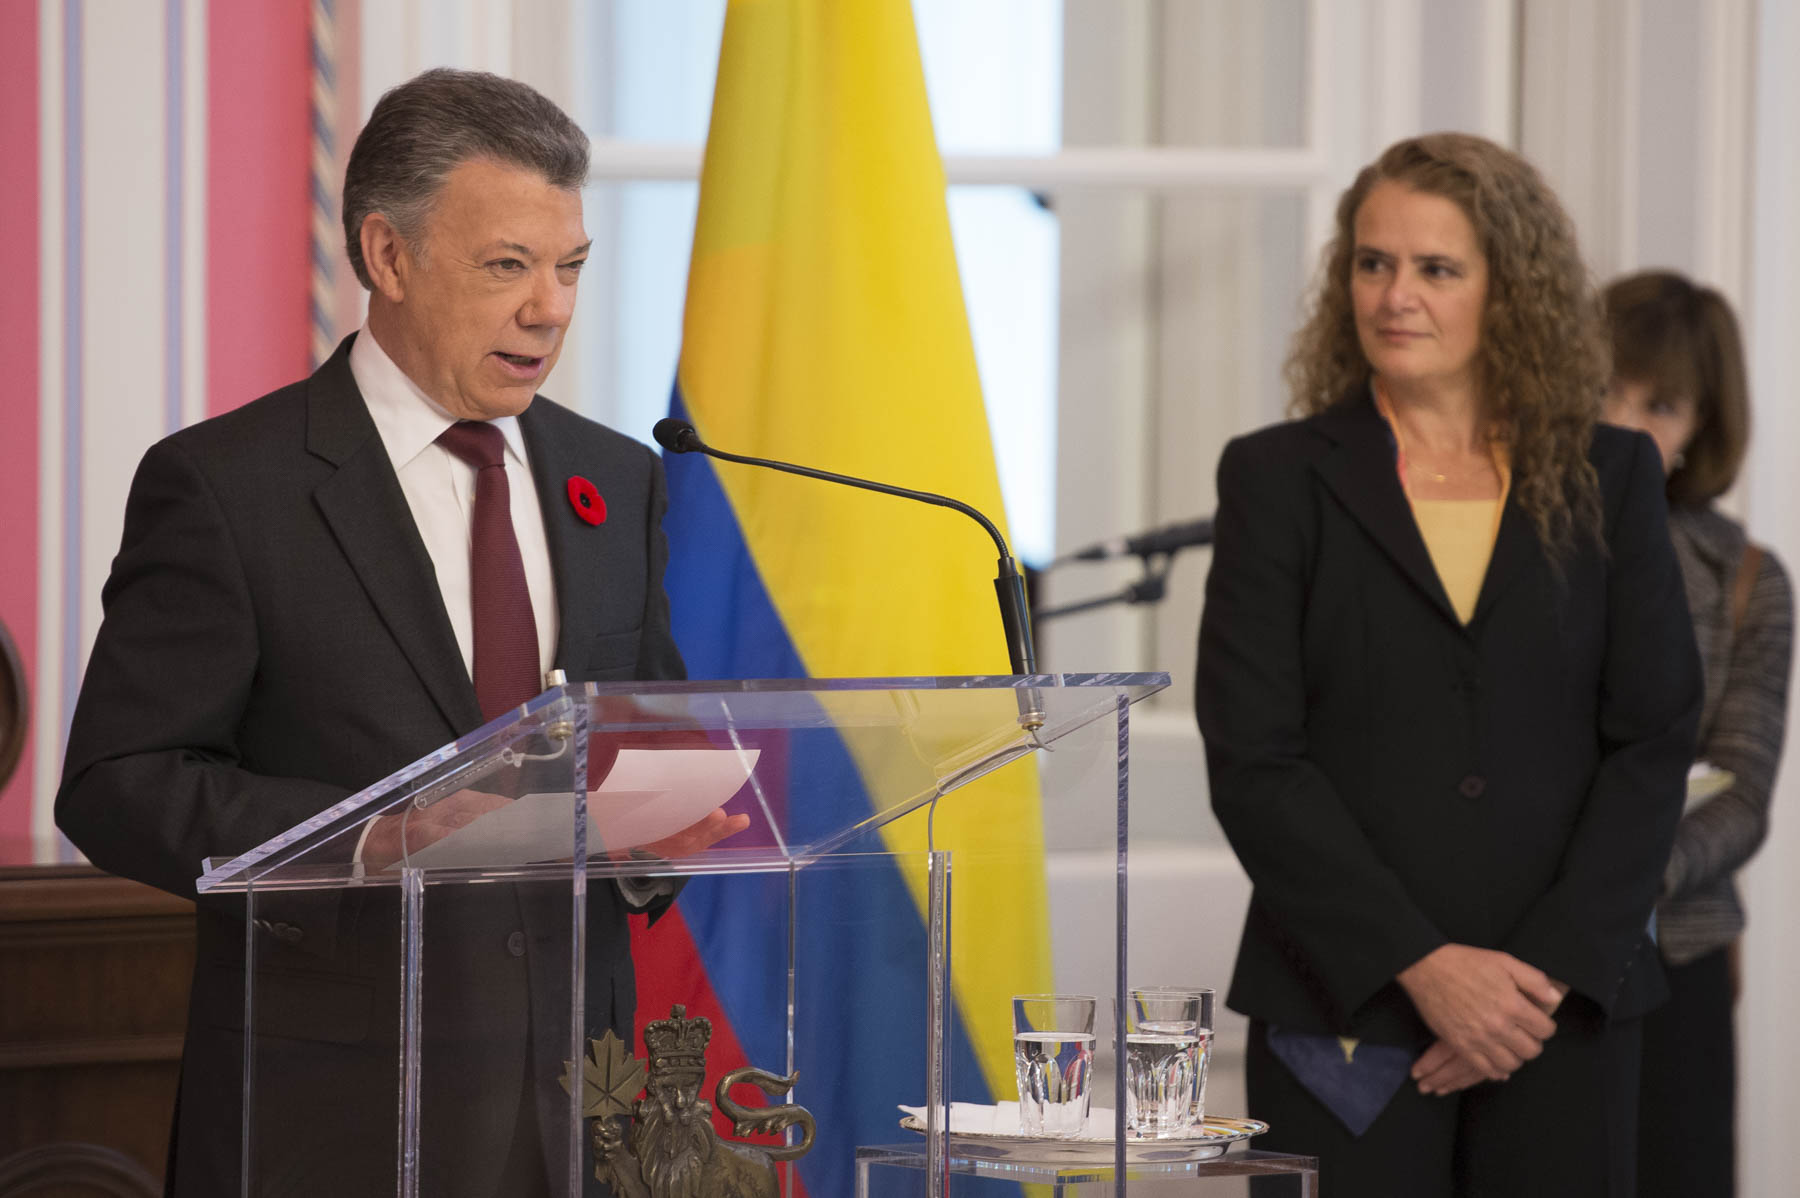 President Santos also delivered remarks.